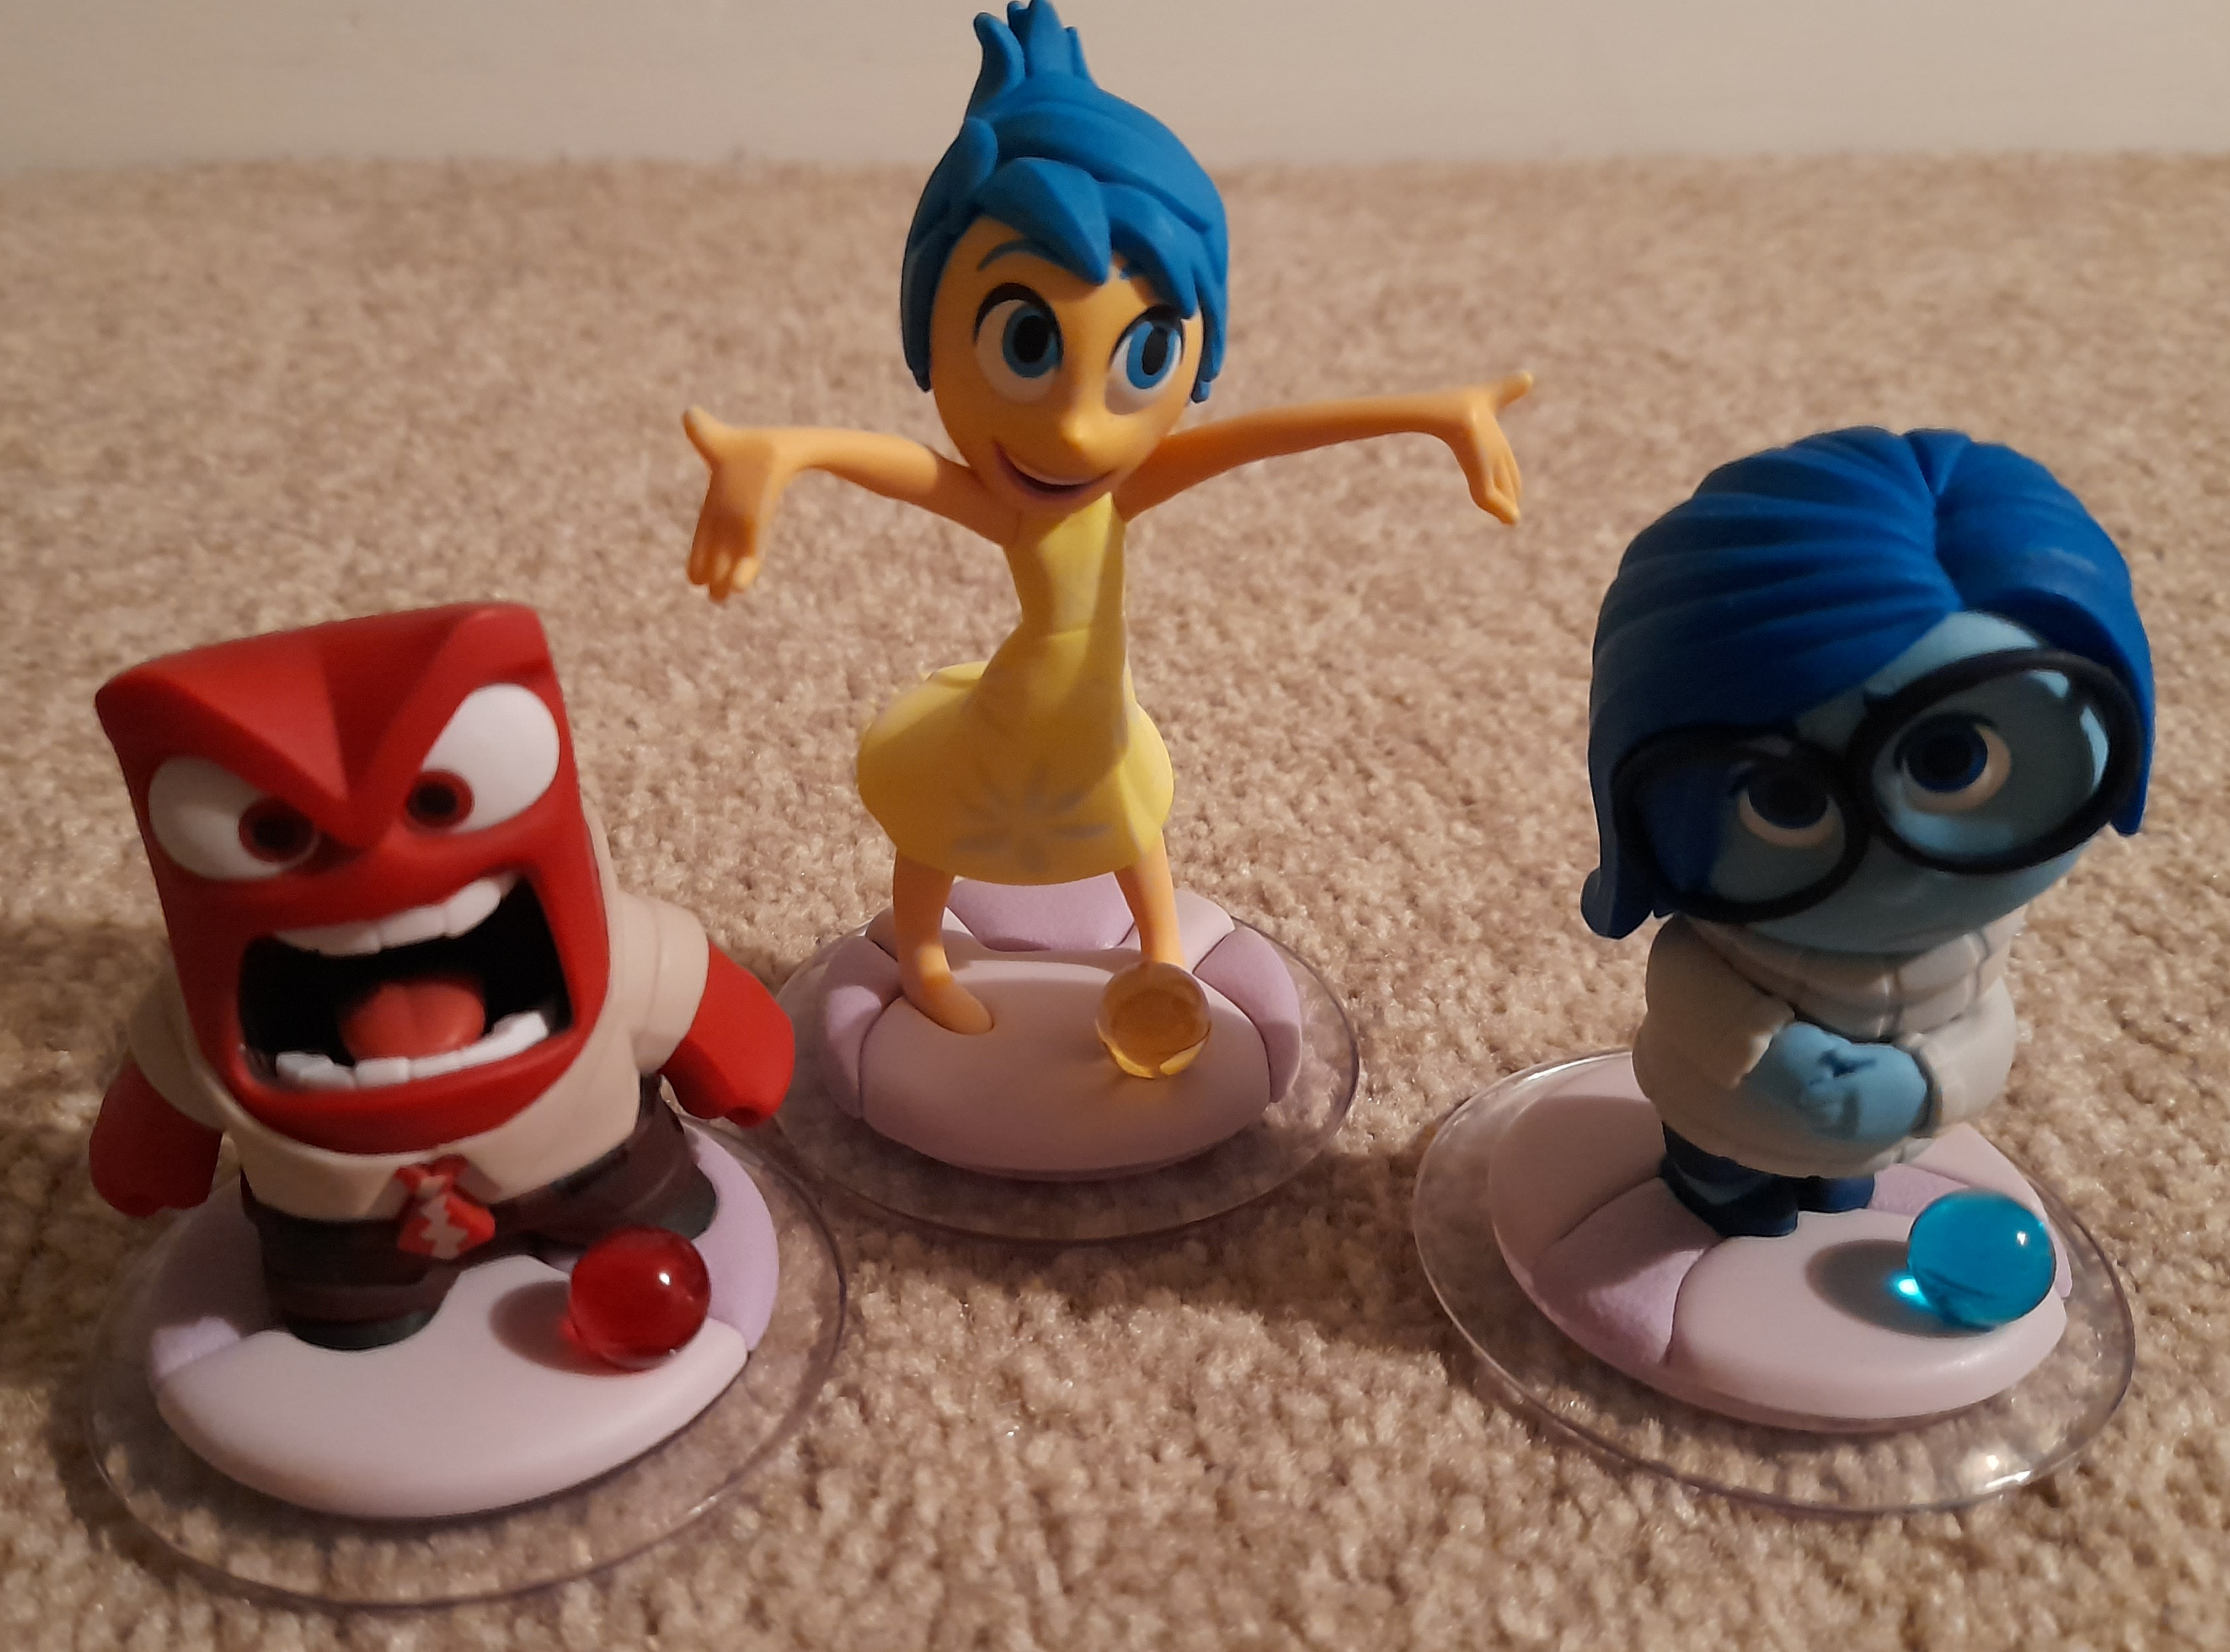 Three characters red is Anger, yellow is Joy and blue is Sadness